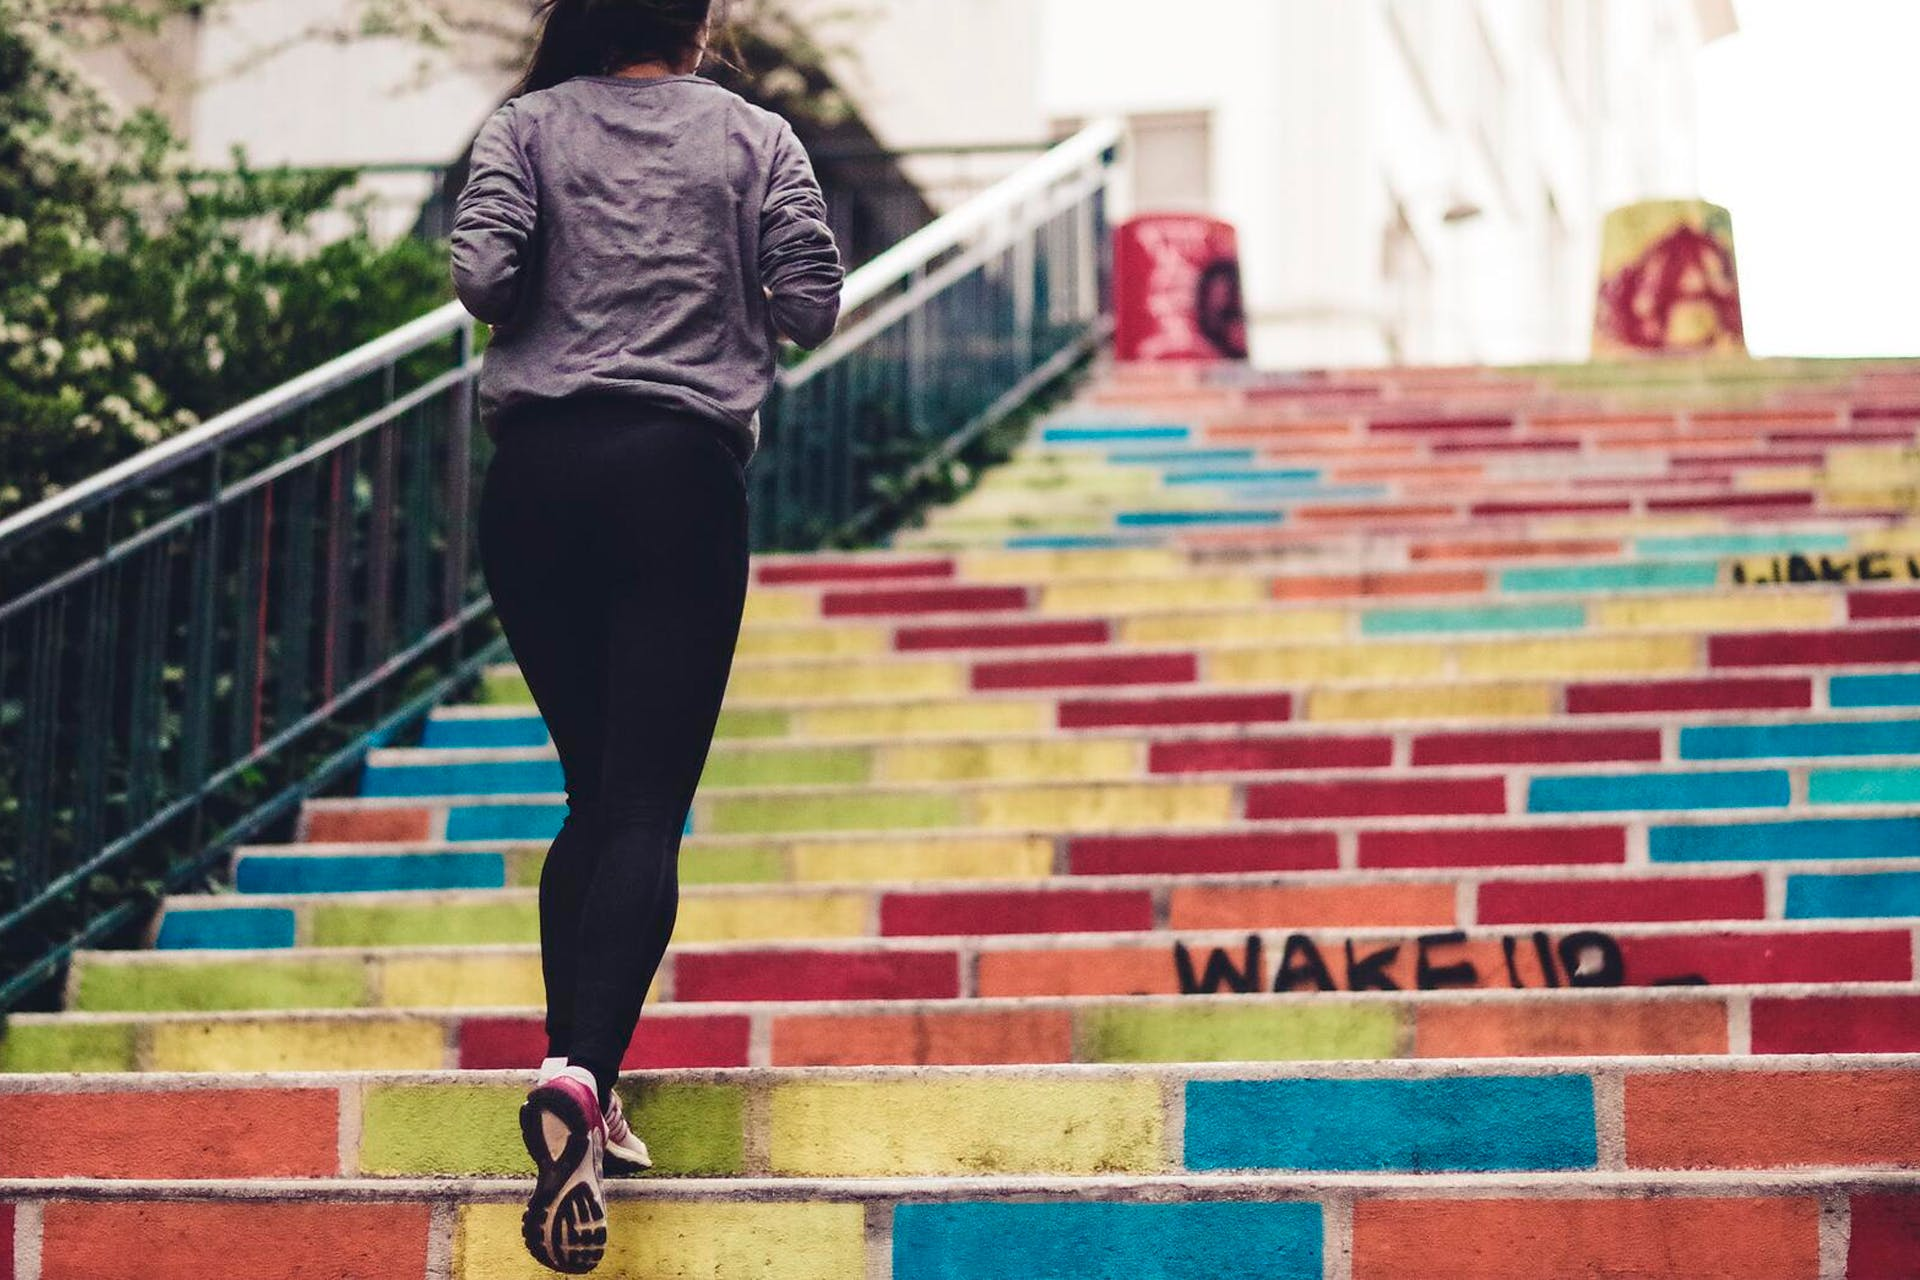 A jogger is walking up colorful stairs